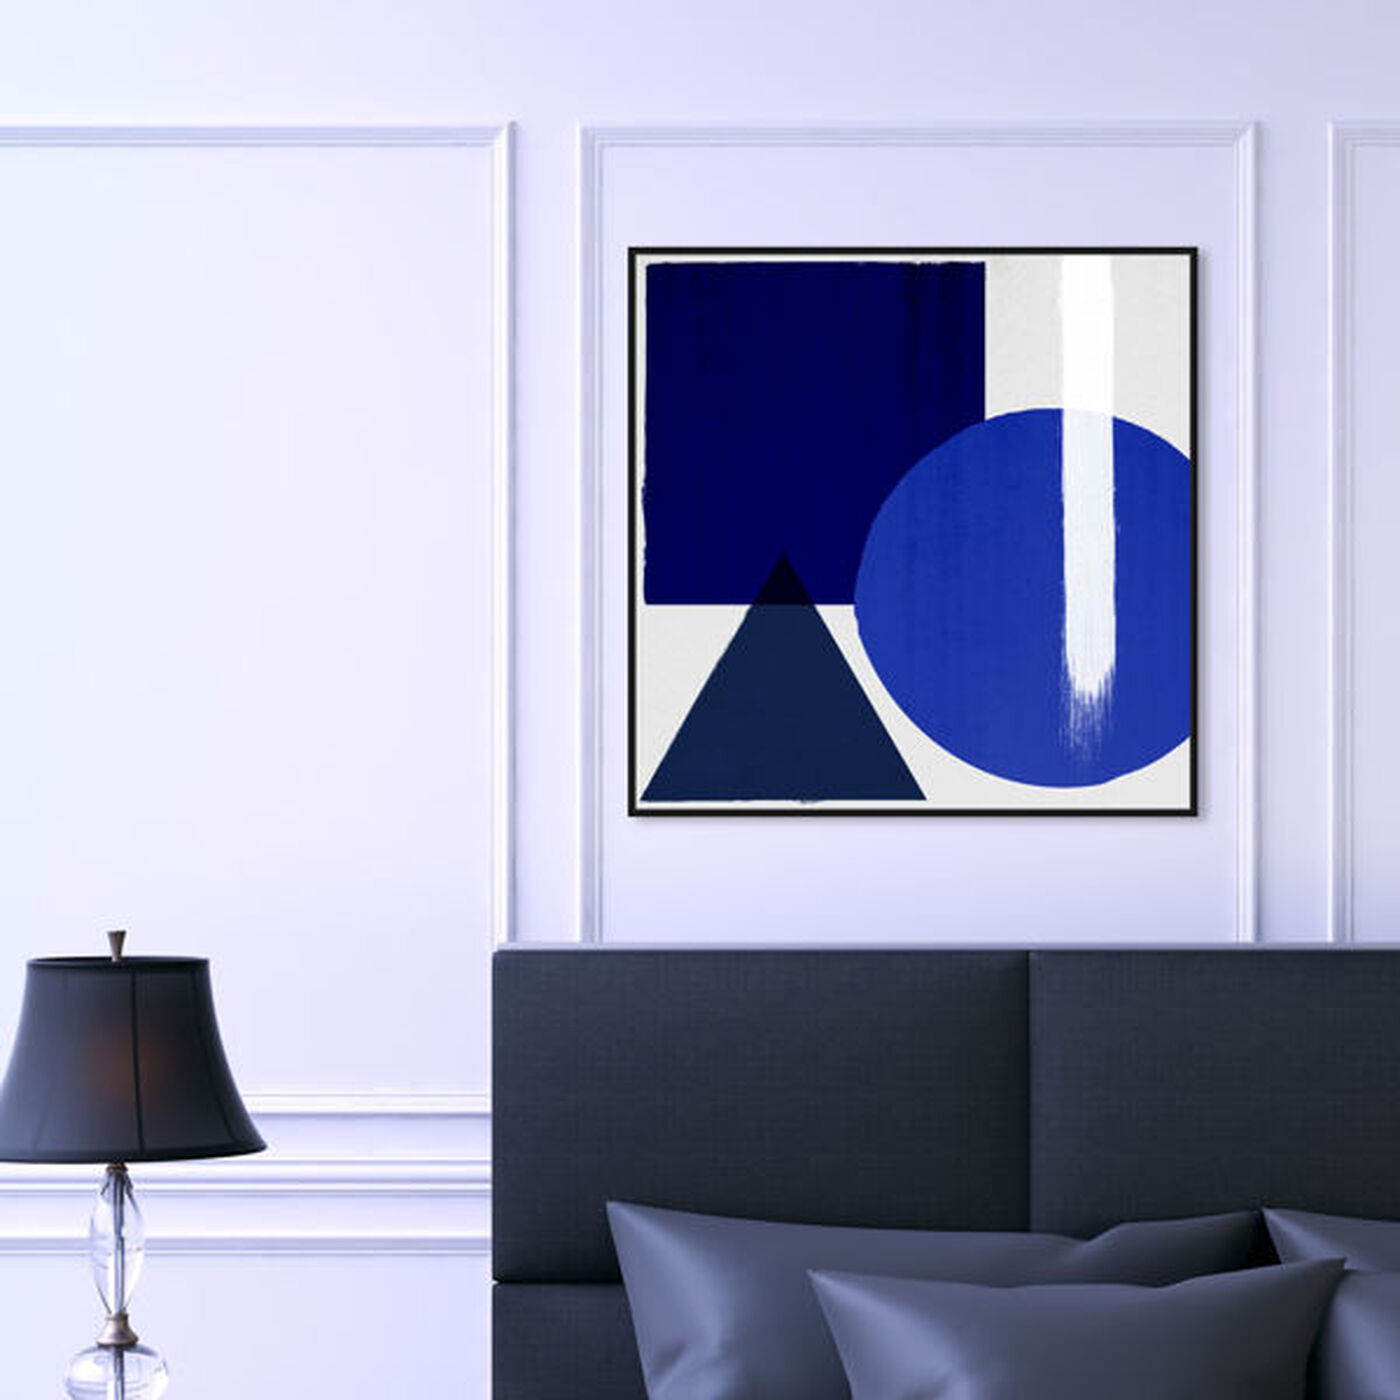 Hanging view of Côte d'Or featuring abstract and geometric art.